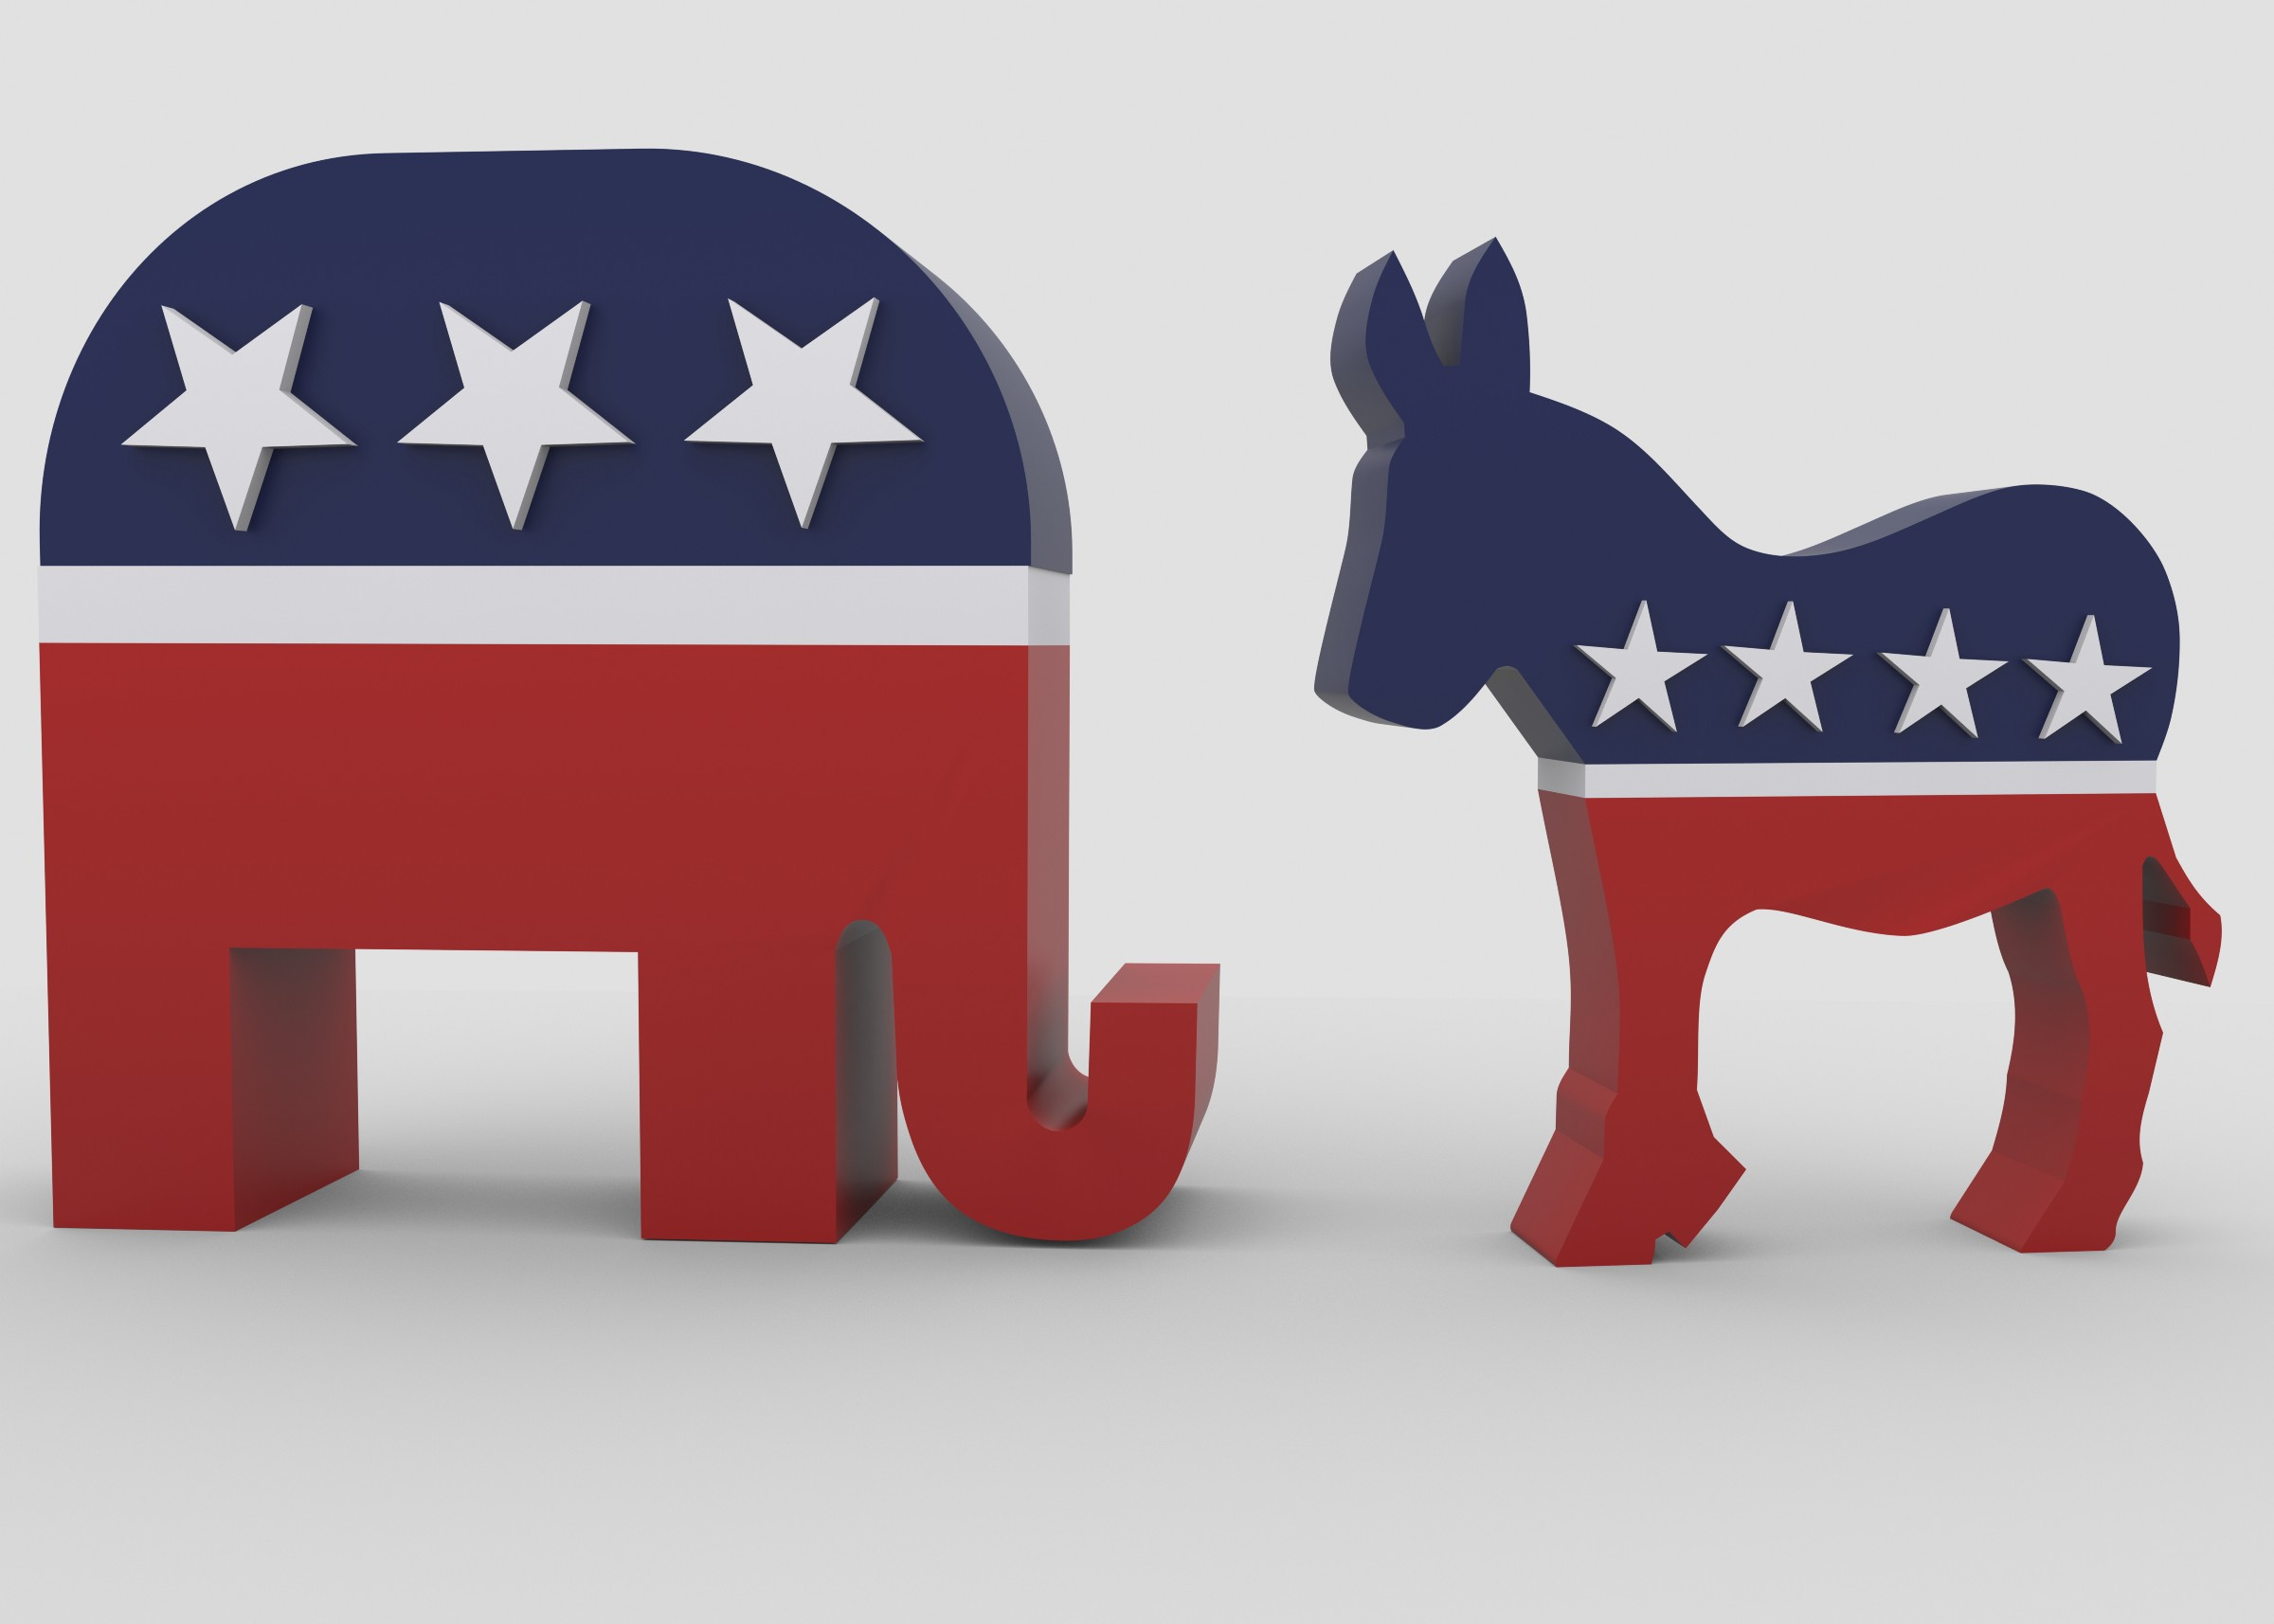 Americans Have a Love/Hate Relationship With Their Political Parties